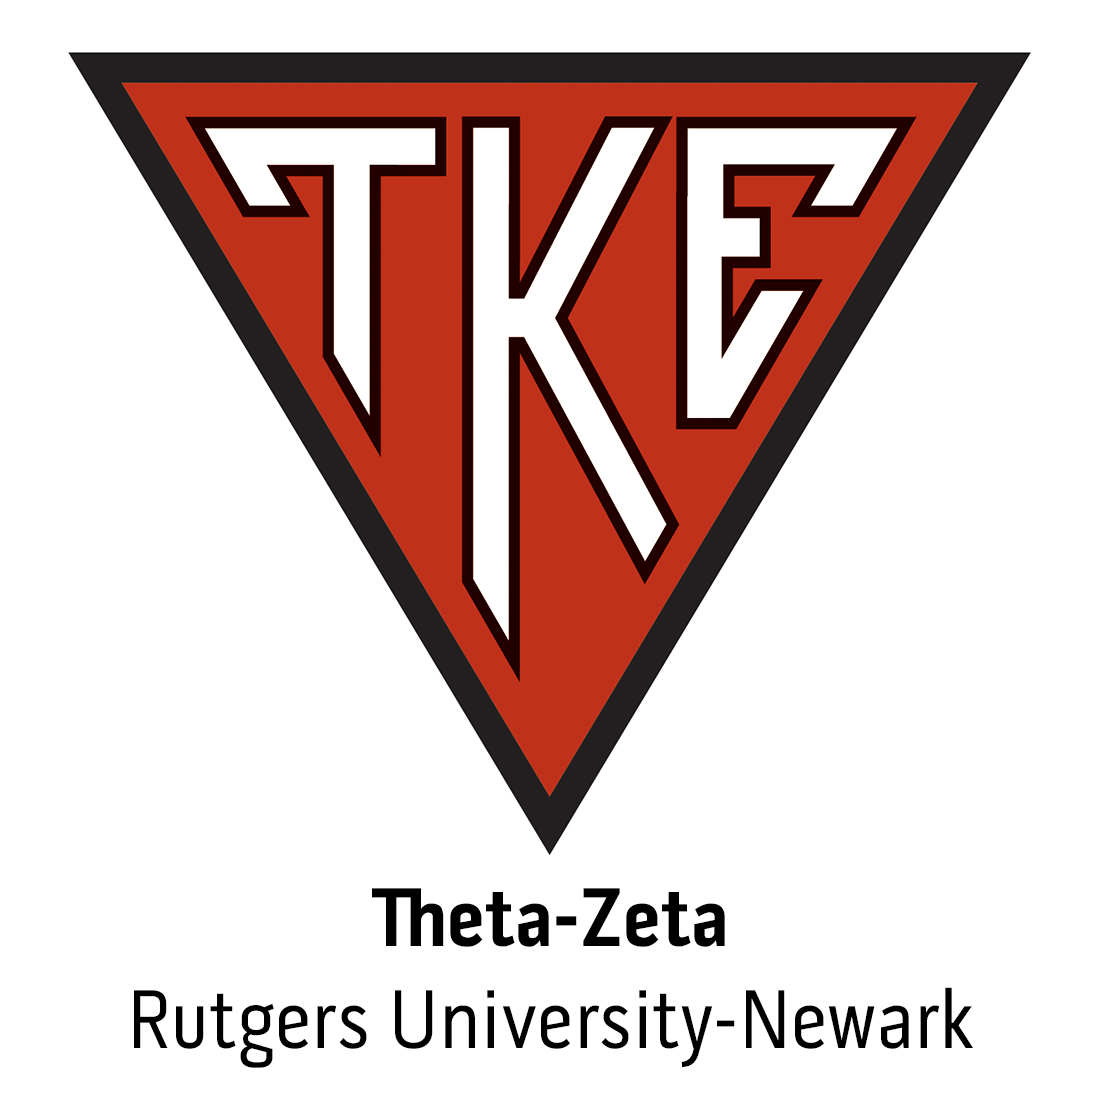 Theta-Zeta Chapter at Rutgers University, Newark